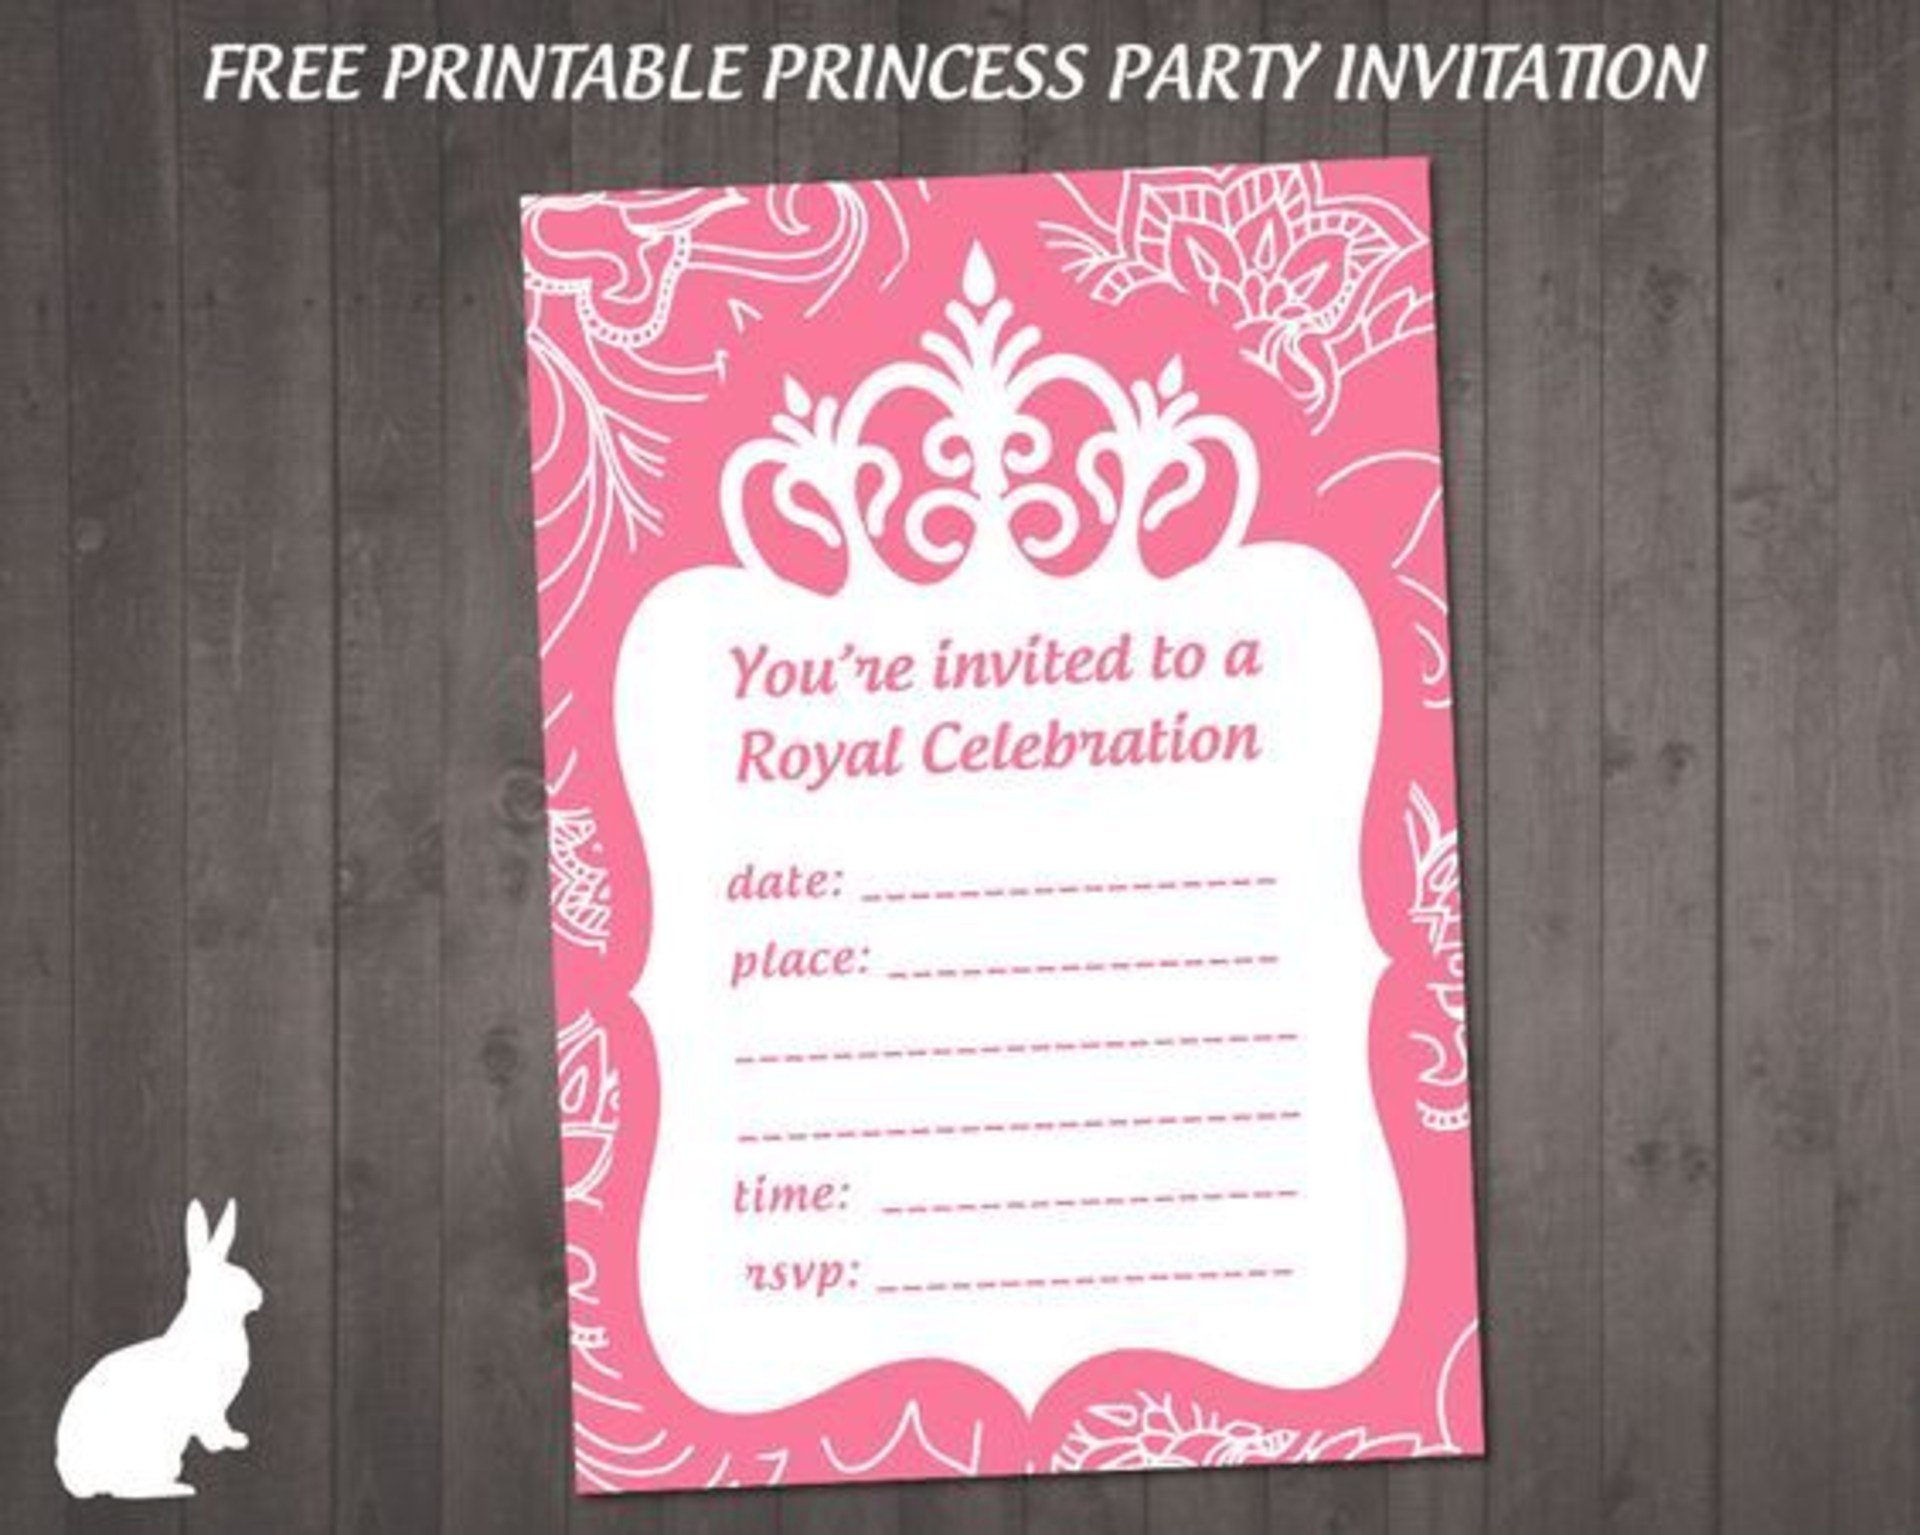 Ff083 Free Princess Party Invitation | Ruby And The Rabbit - Free Printable Princess Invitations